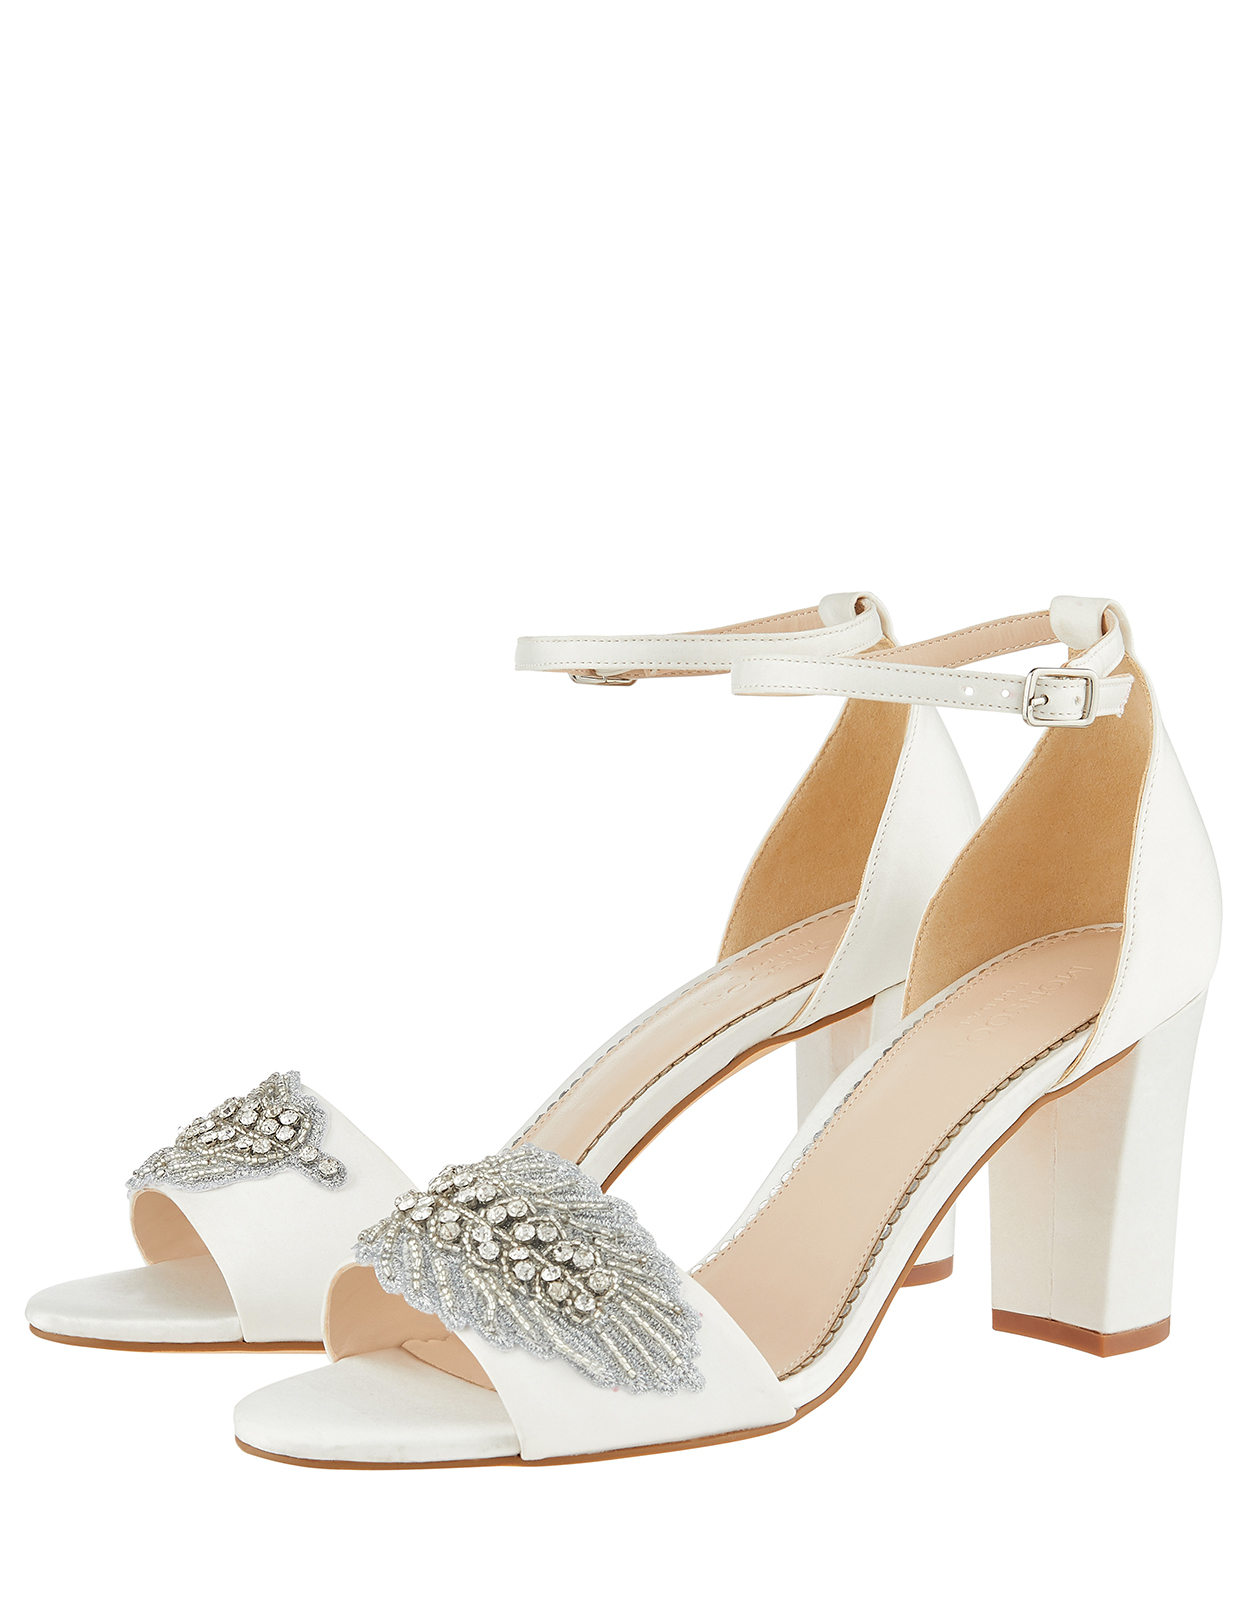 Monsoon Farin Feather Vamp Block Heel Bridal Sandals